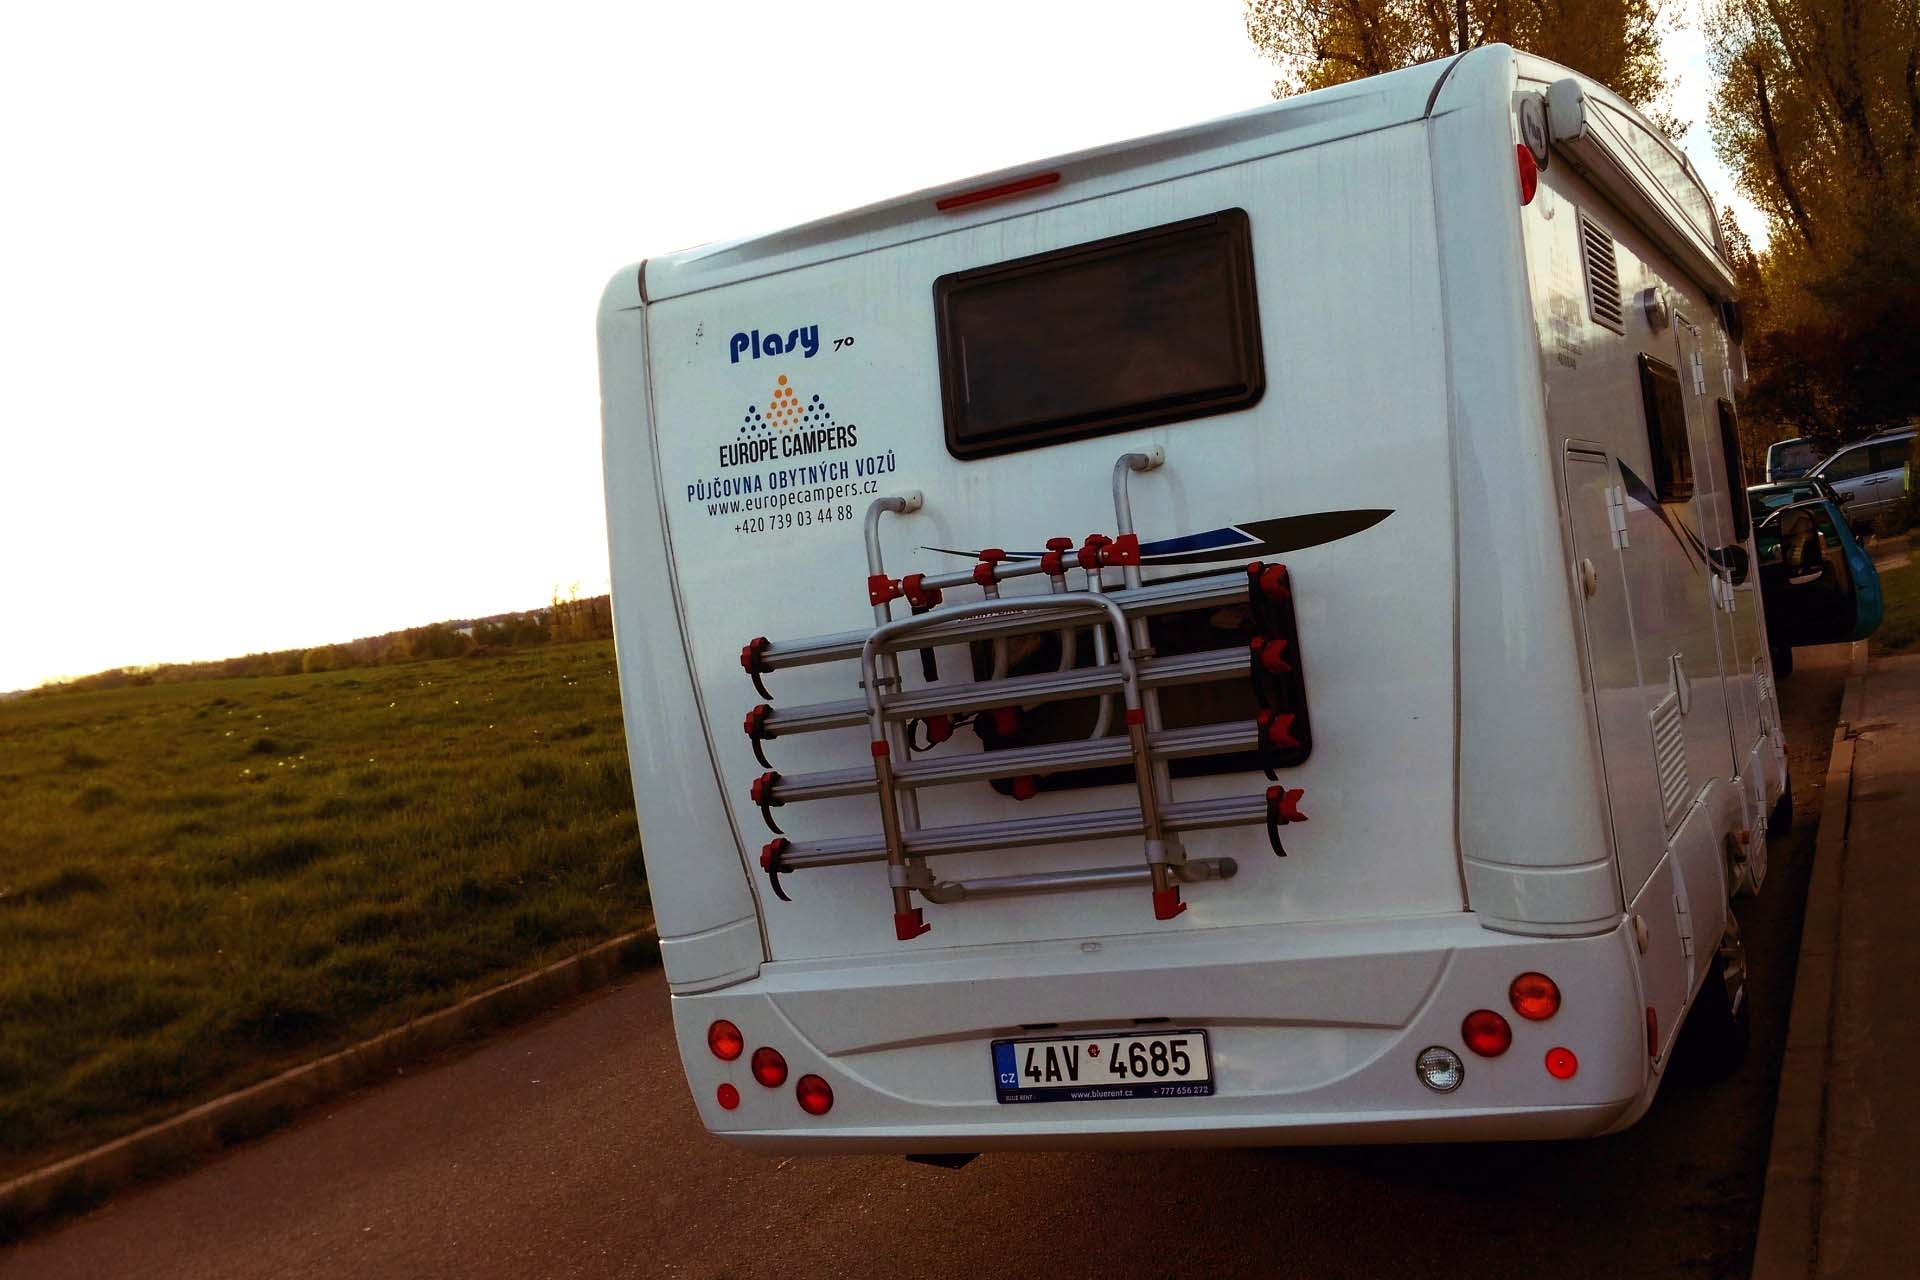 Europe Campers P.L.A. Plasy P70